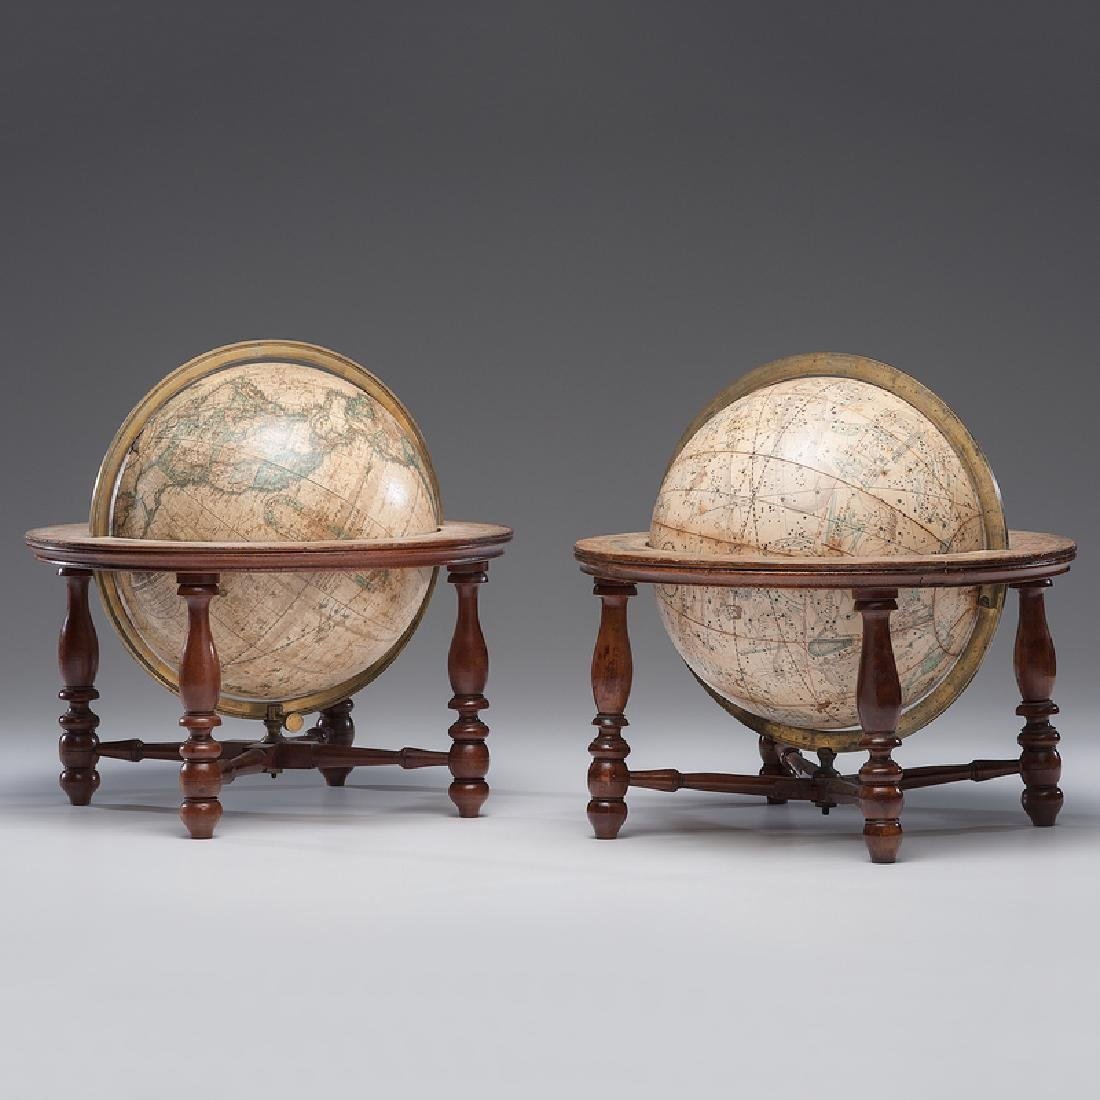 Merriam & Moore  Terrestrial and Celestial Tabletop